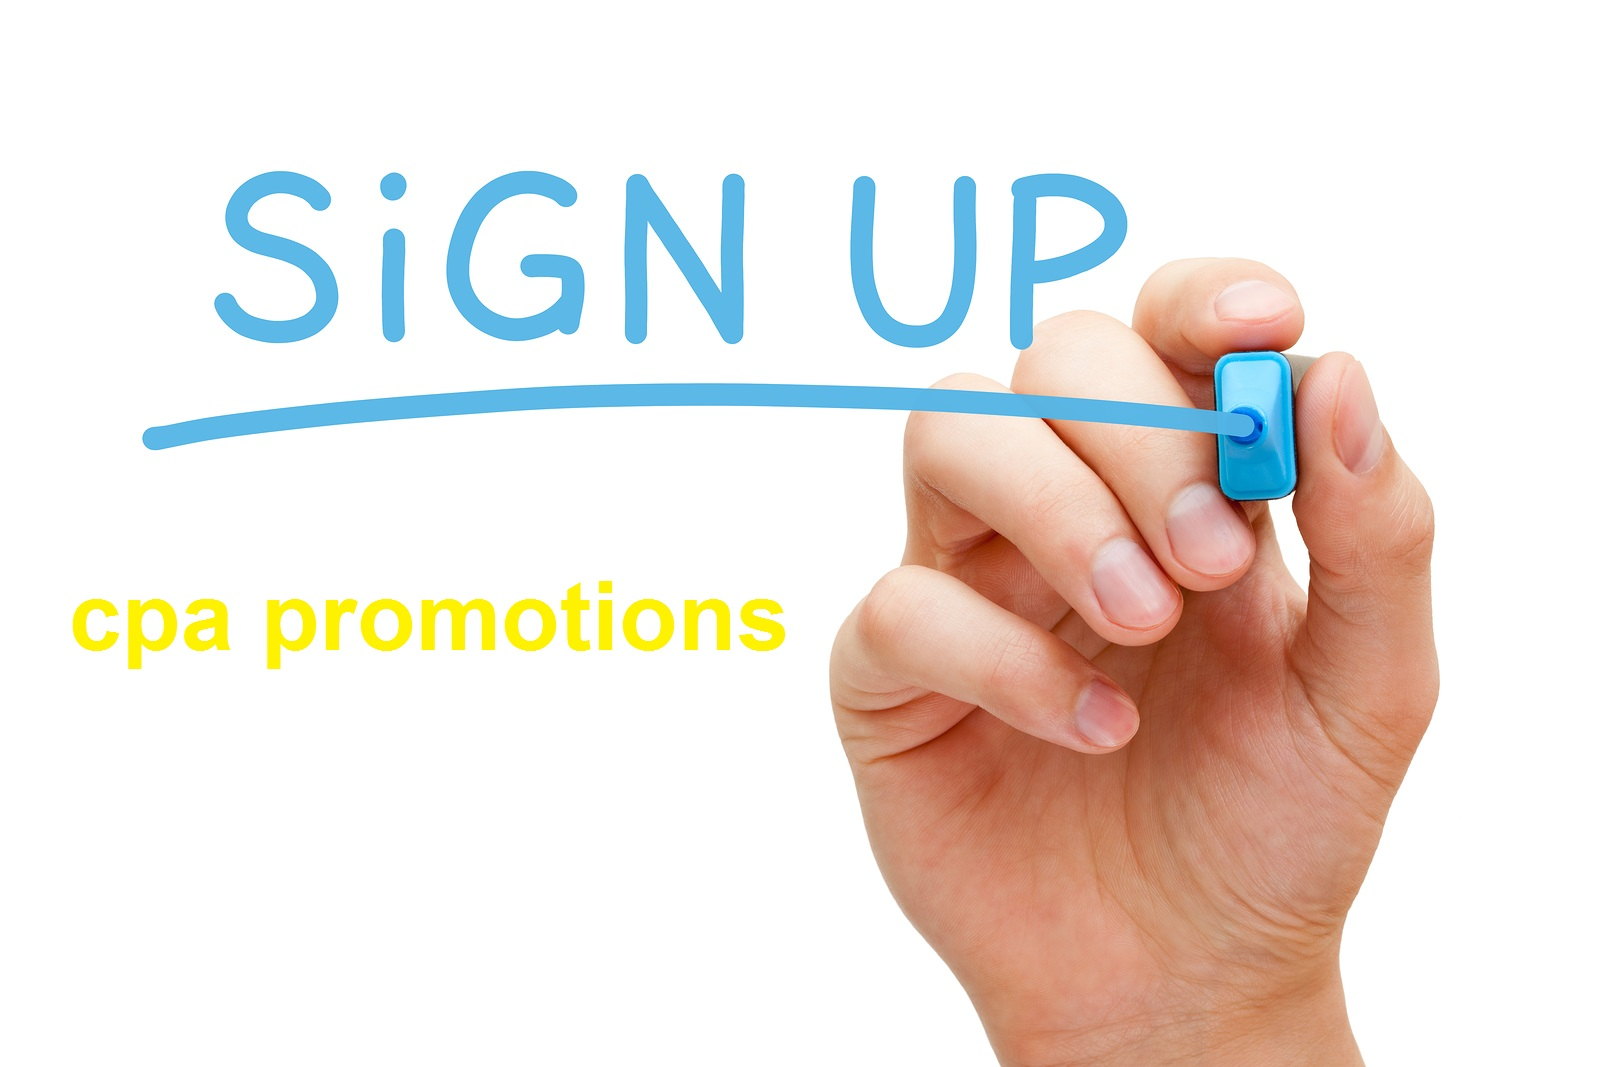 two methods for get cheap sign ups and cpa pormotions complete |